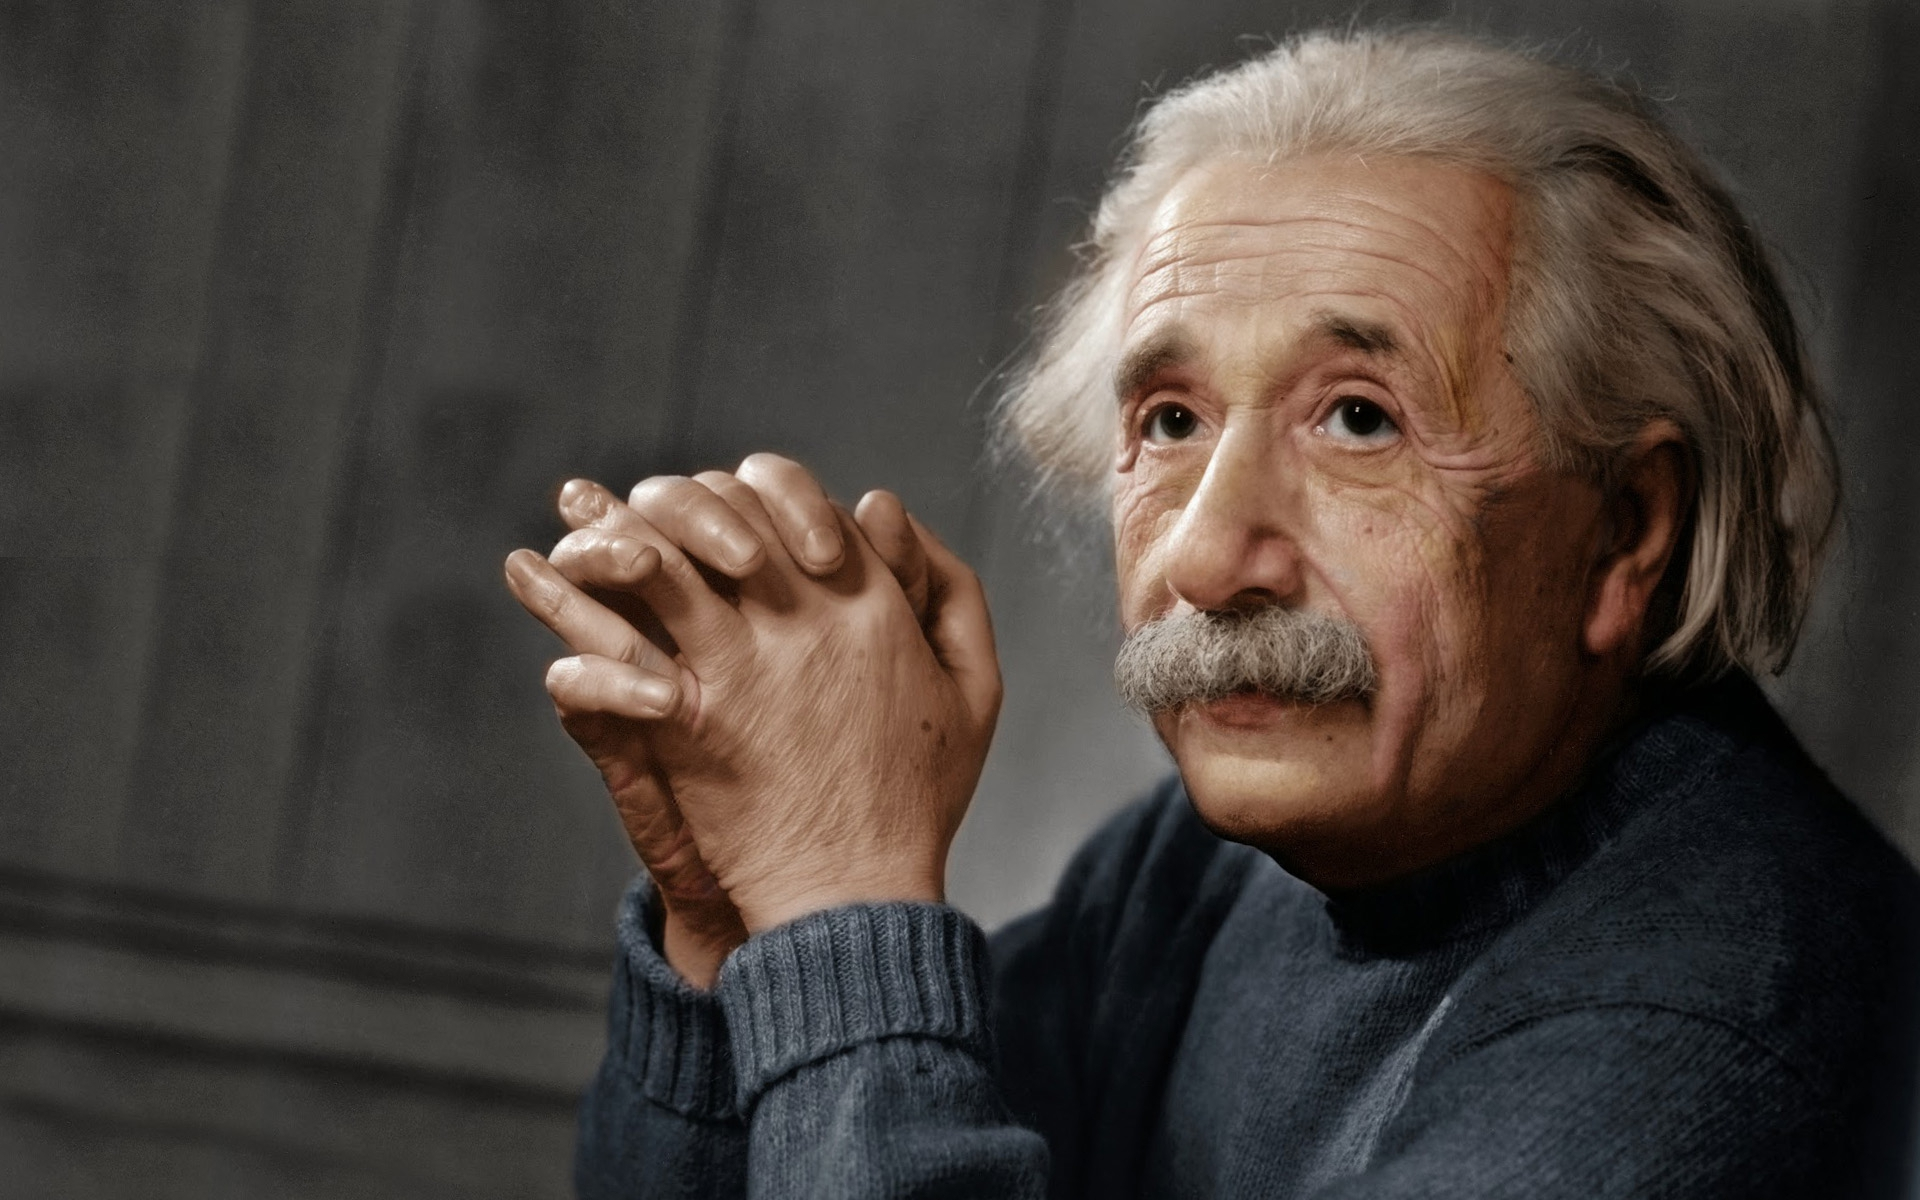 Albert einstein wallpapers images photos pictures backgrounds - Albert einstein hd images ...